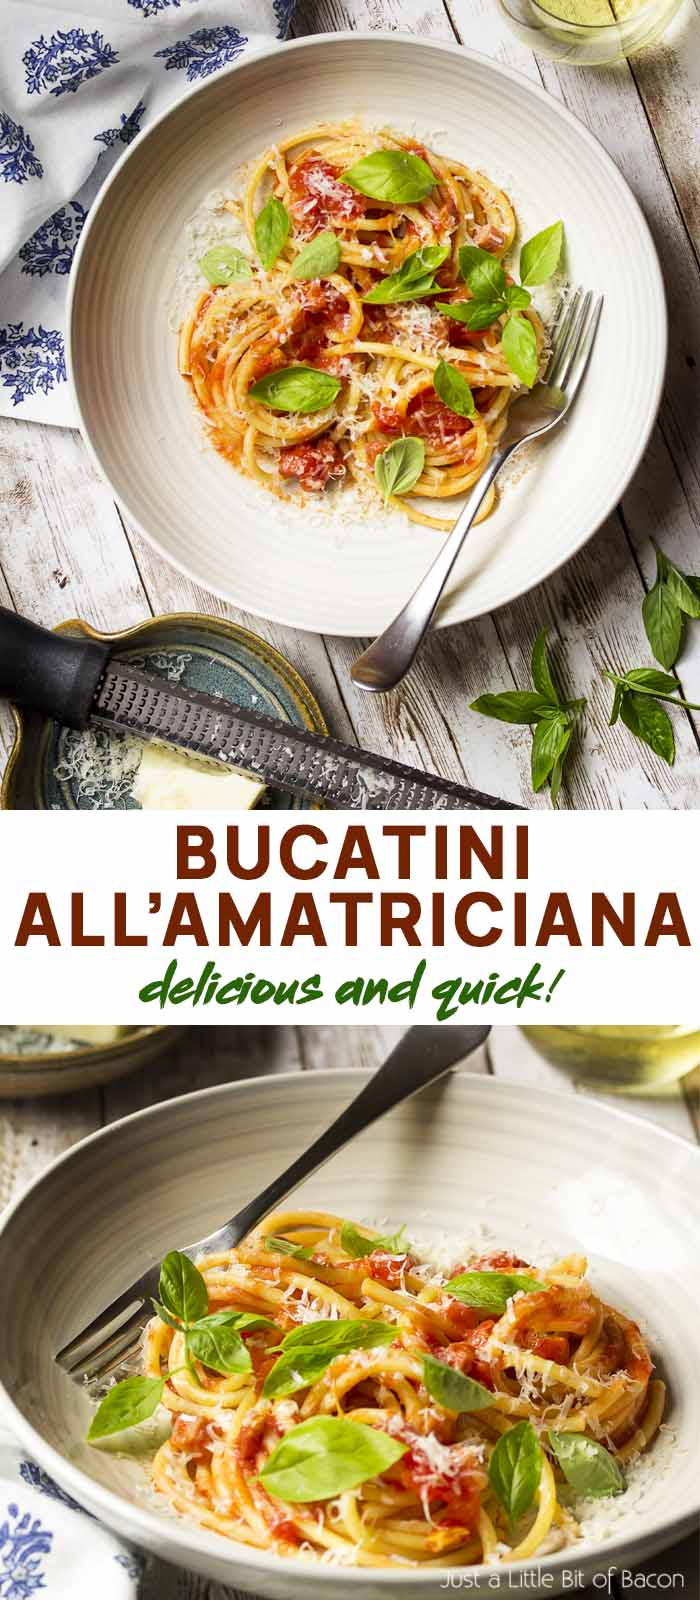 Two views of pasta and sauce in a wide bowl with text overlay - Bucatini all'Amatriciana